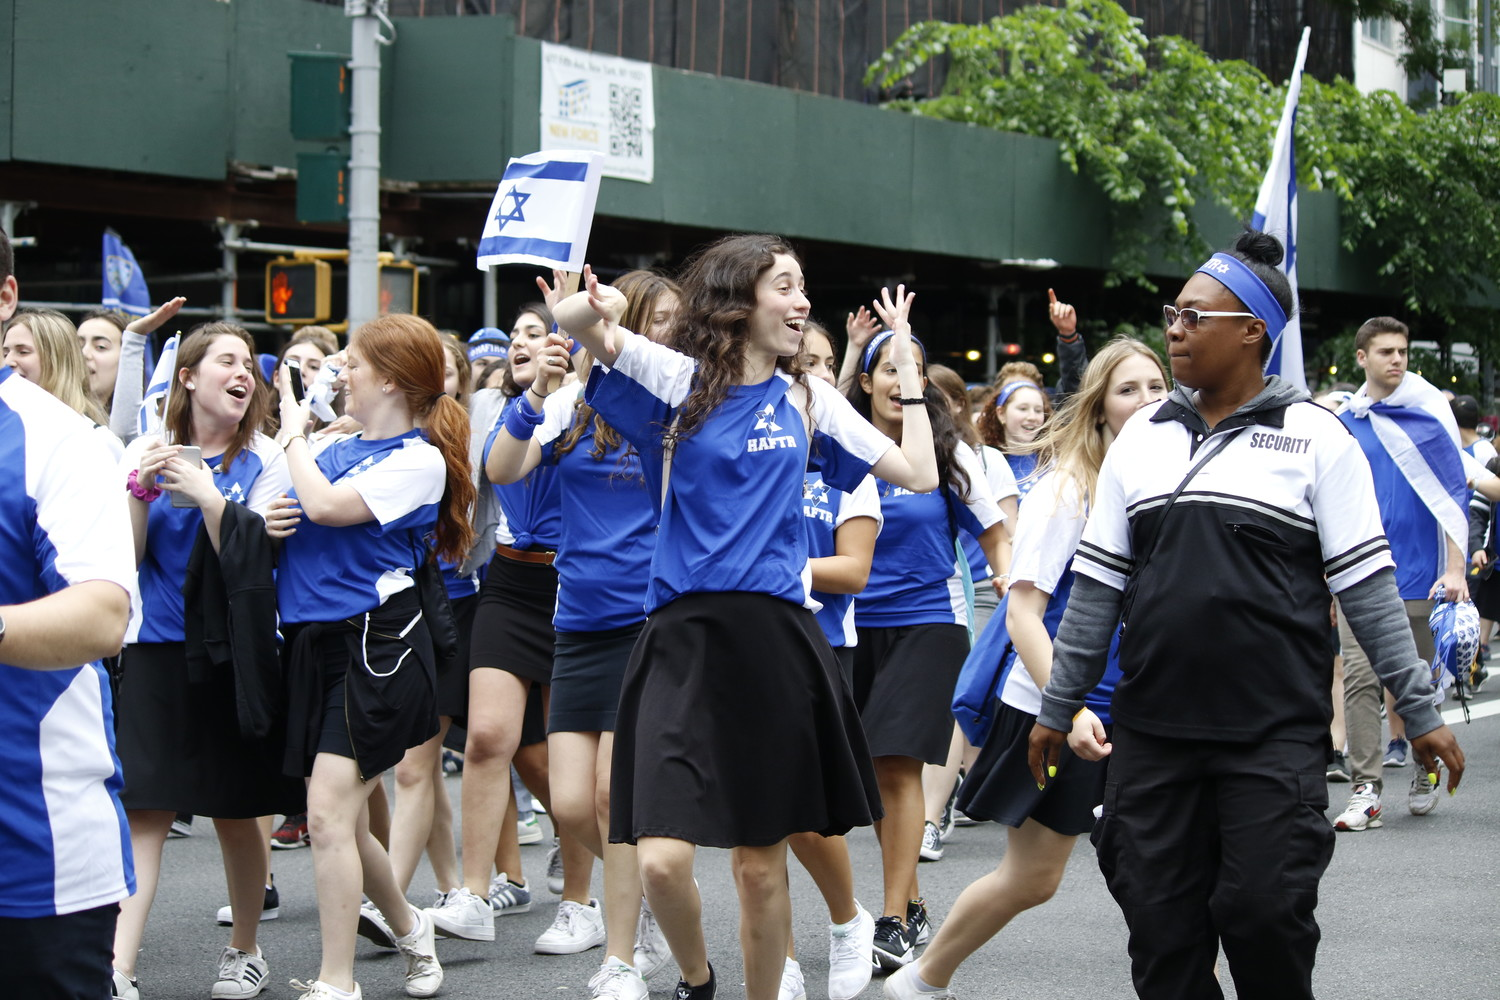 HAFTR High School students, at far left, appeared to enjoy their time in the Israel Day Parade last Sunday.